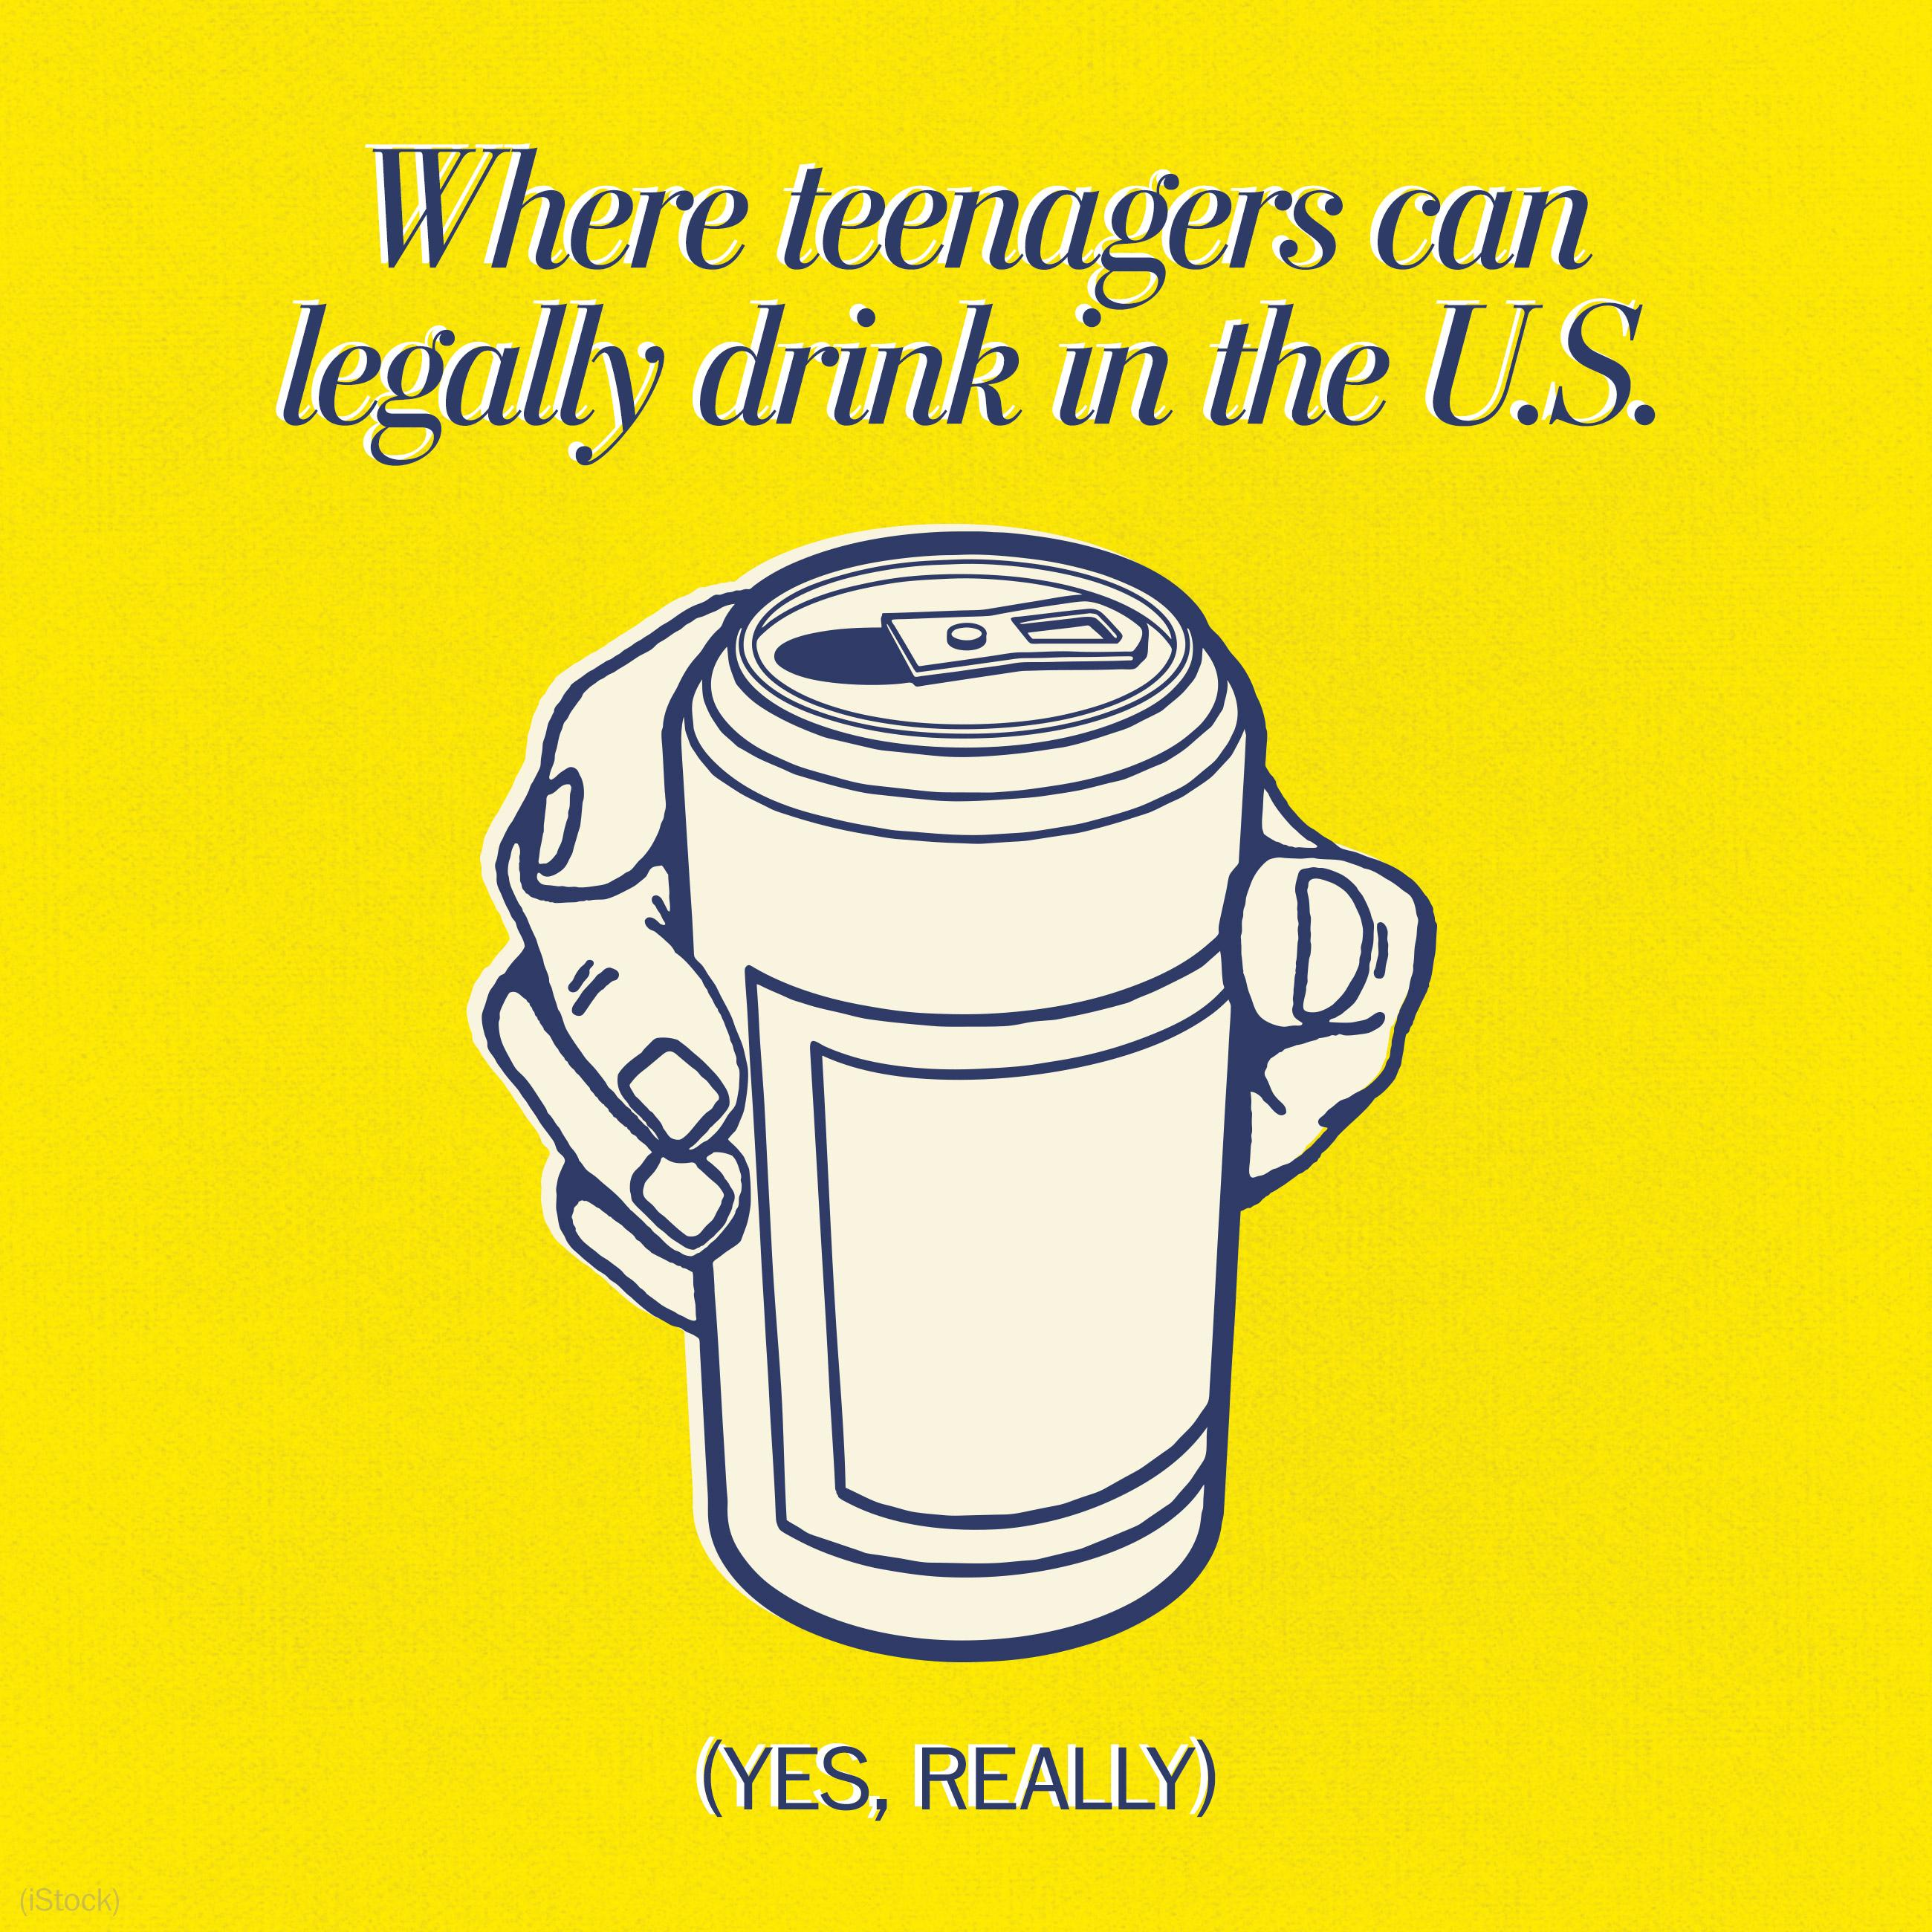 Where teenagers can legally drink in the U.S. (yes, really)